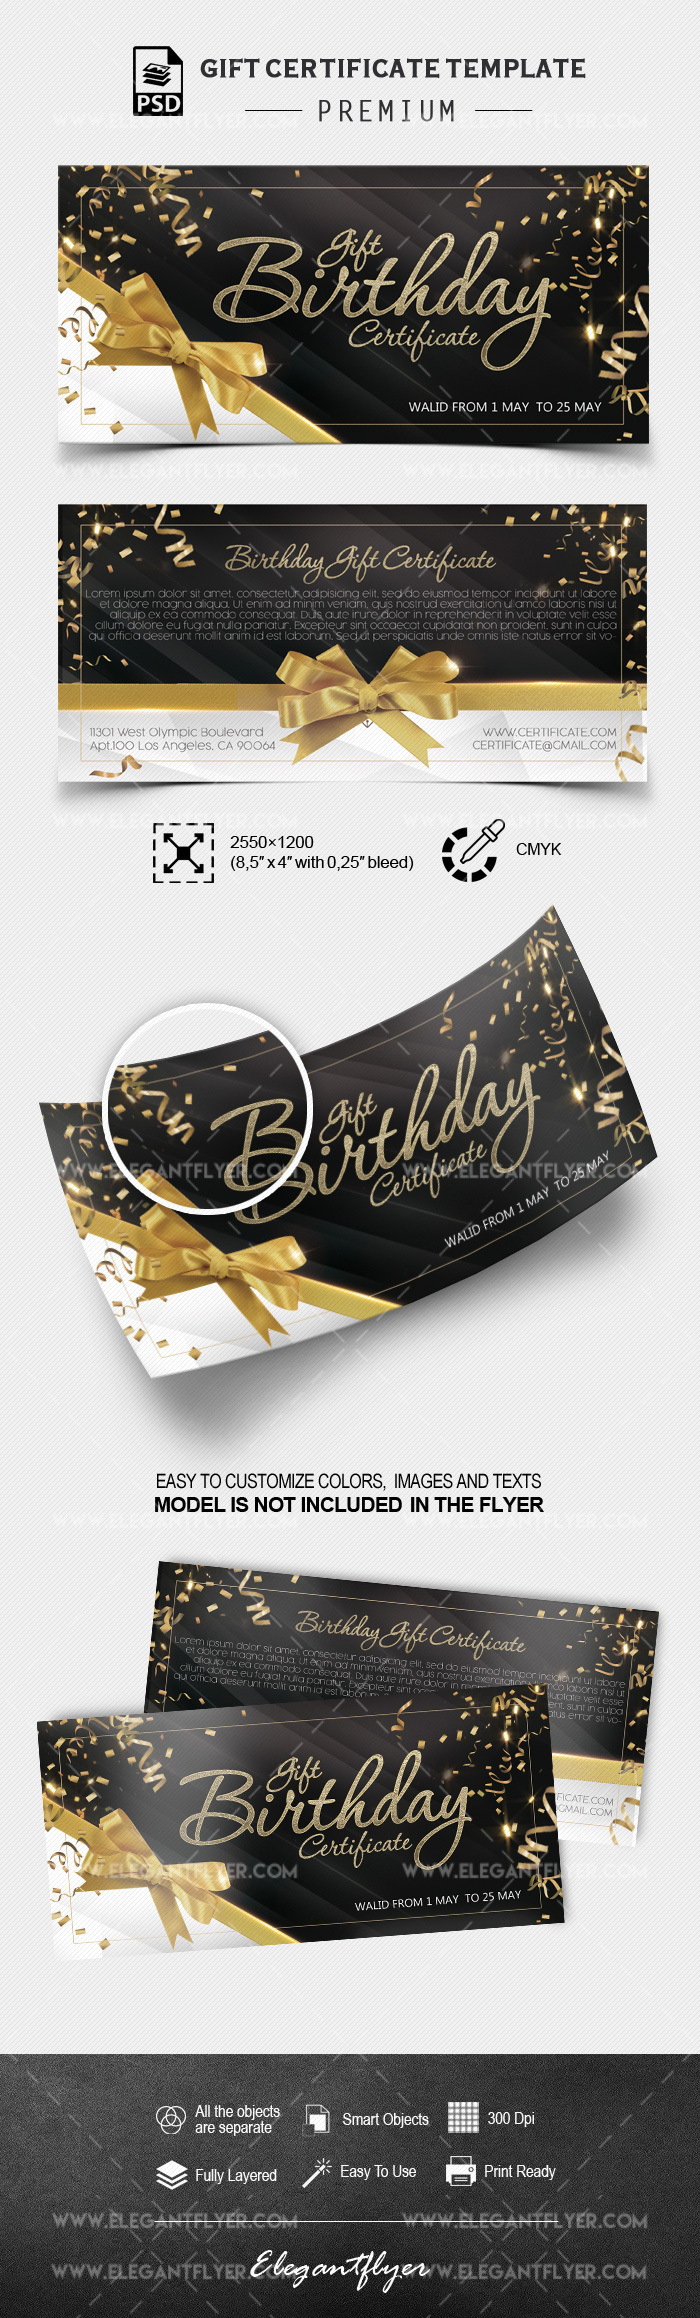 Birthday Gift Certificate – PSD Template